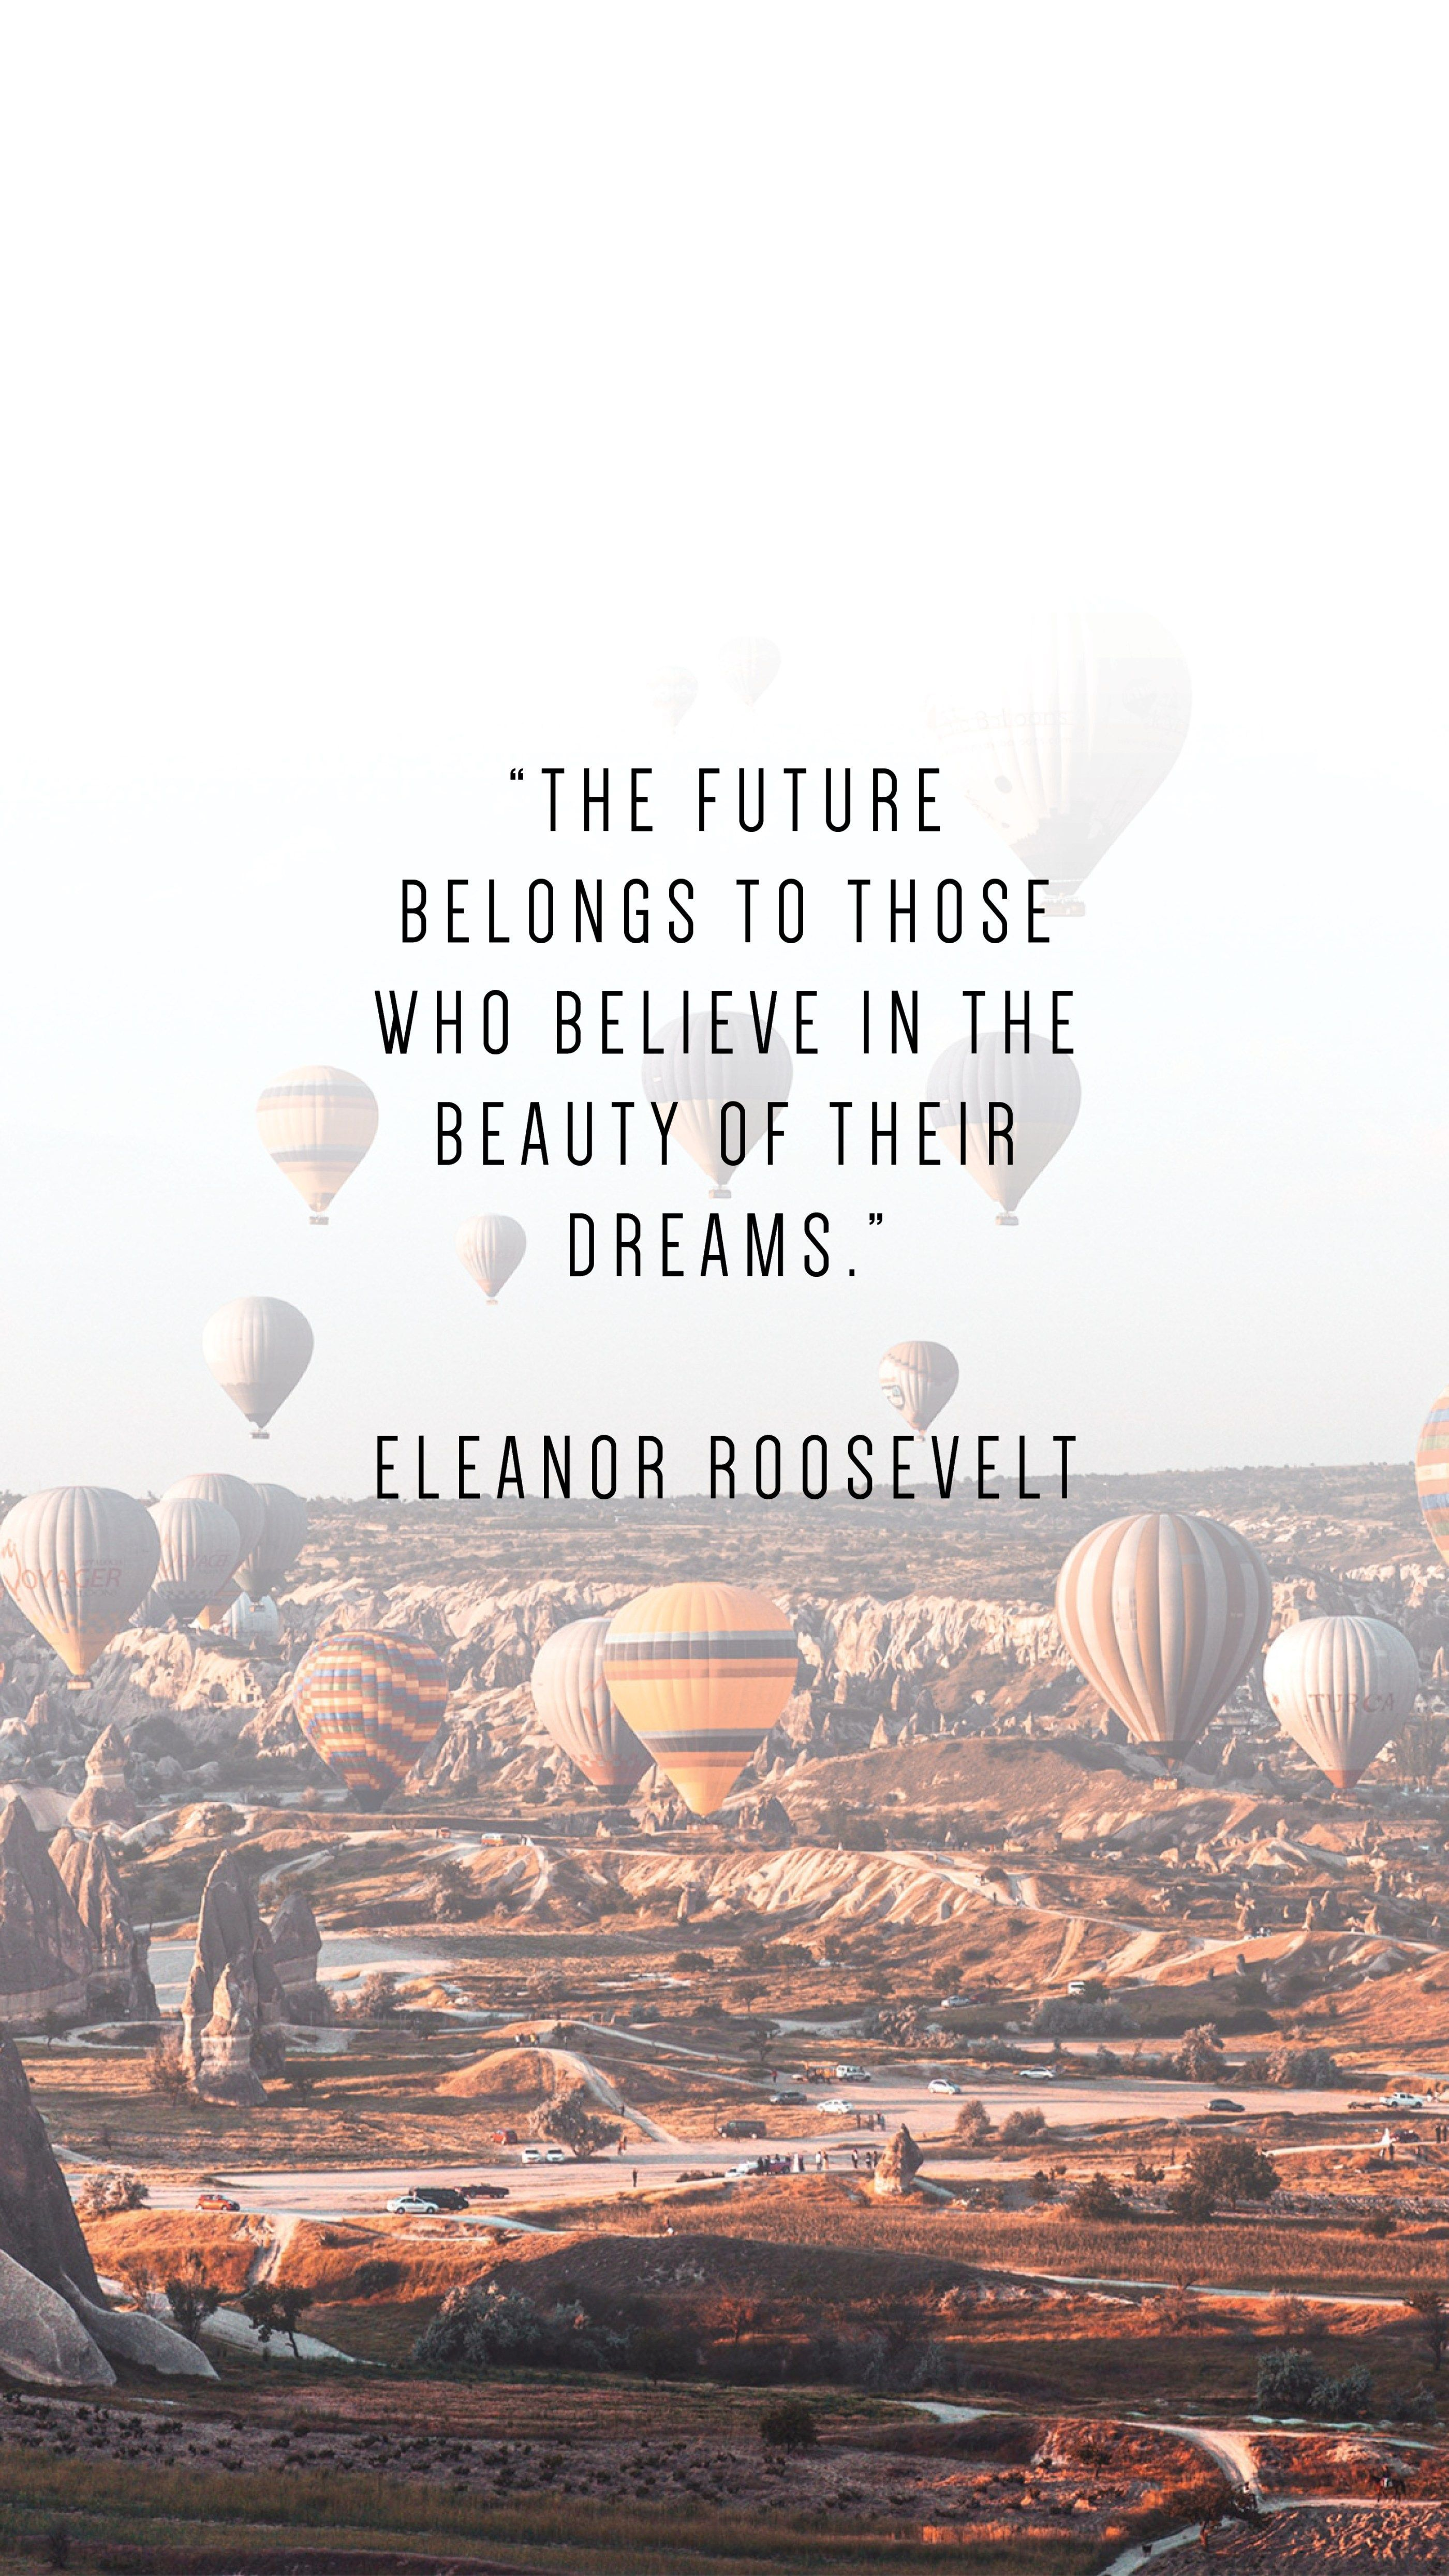 Be inspired to pursue dream life with these phone wallpaper quotes to inspire. Eleanor Roosevelt quote #quotes #wanderlust #inspiration #phonewallpaperBe #inspired #to #pursue #dream #life #with #these #phone #wallpaper #quotes #to #inspire. #Eleanor #Roosevelt #quote ##quotes ##wanderlust ##inspiration ##phonewallpaper #Quotes